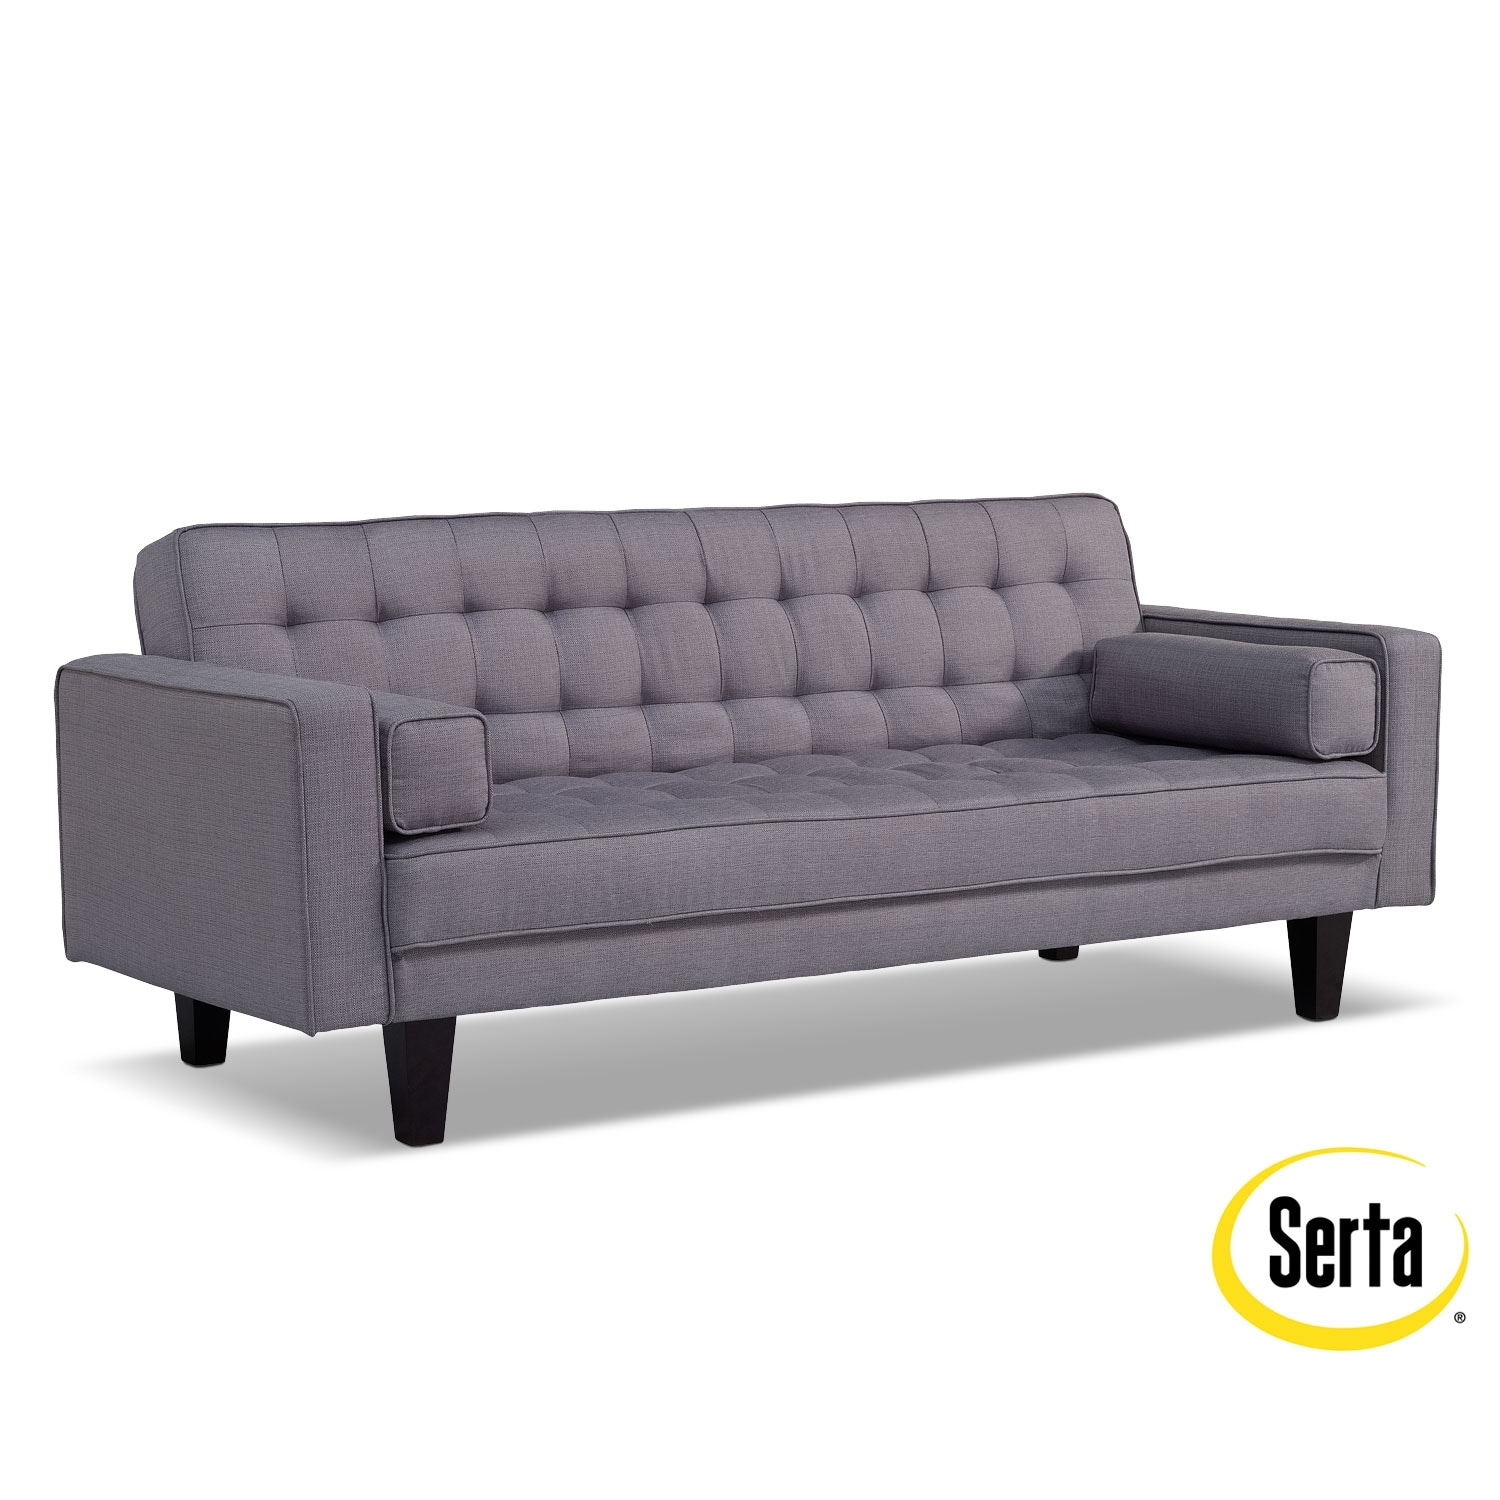 Bianca Futon Sofa Bed